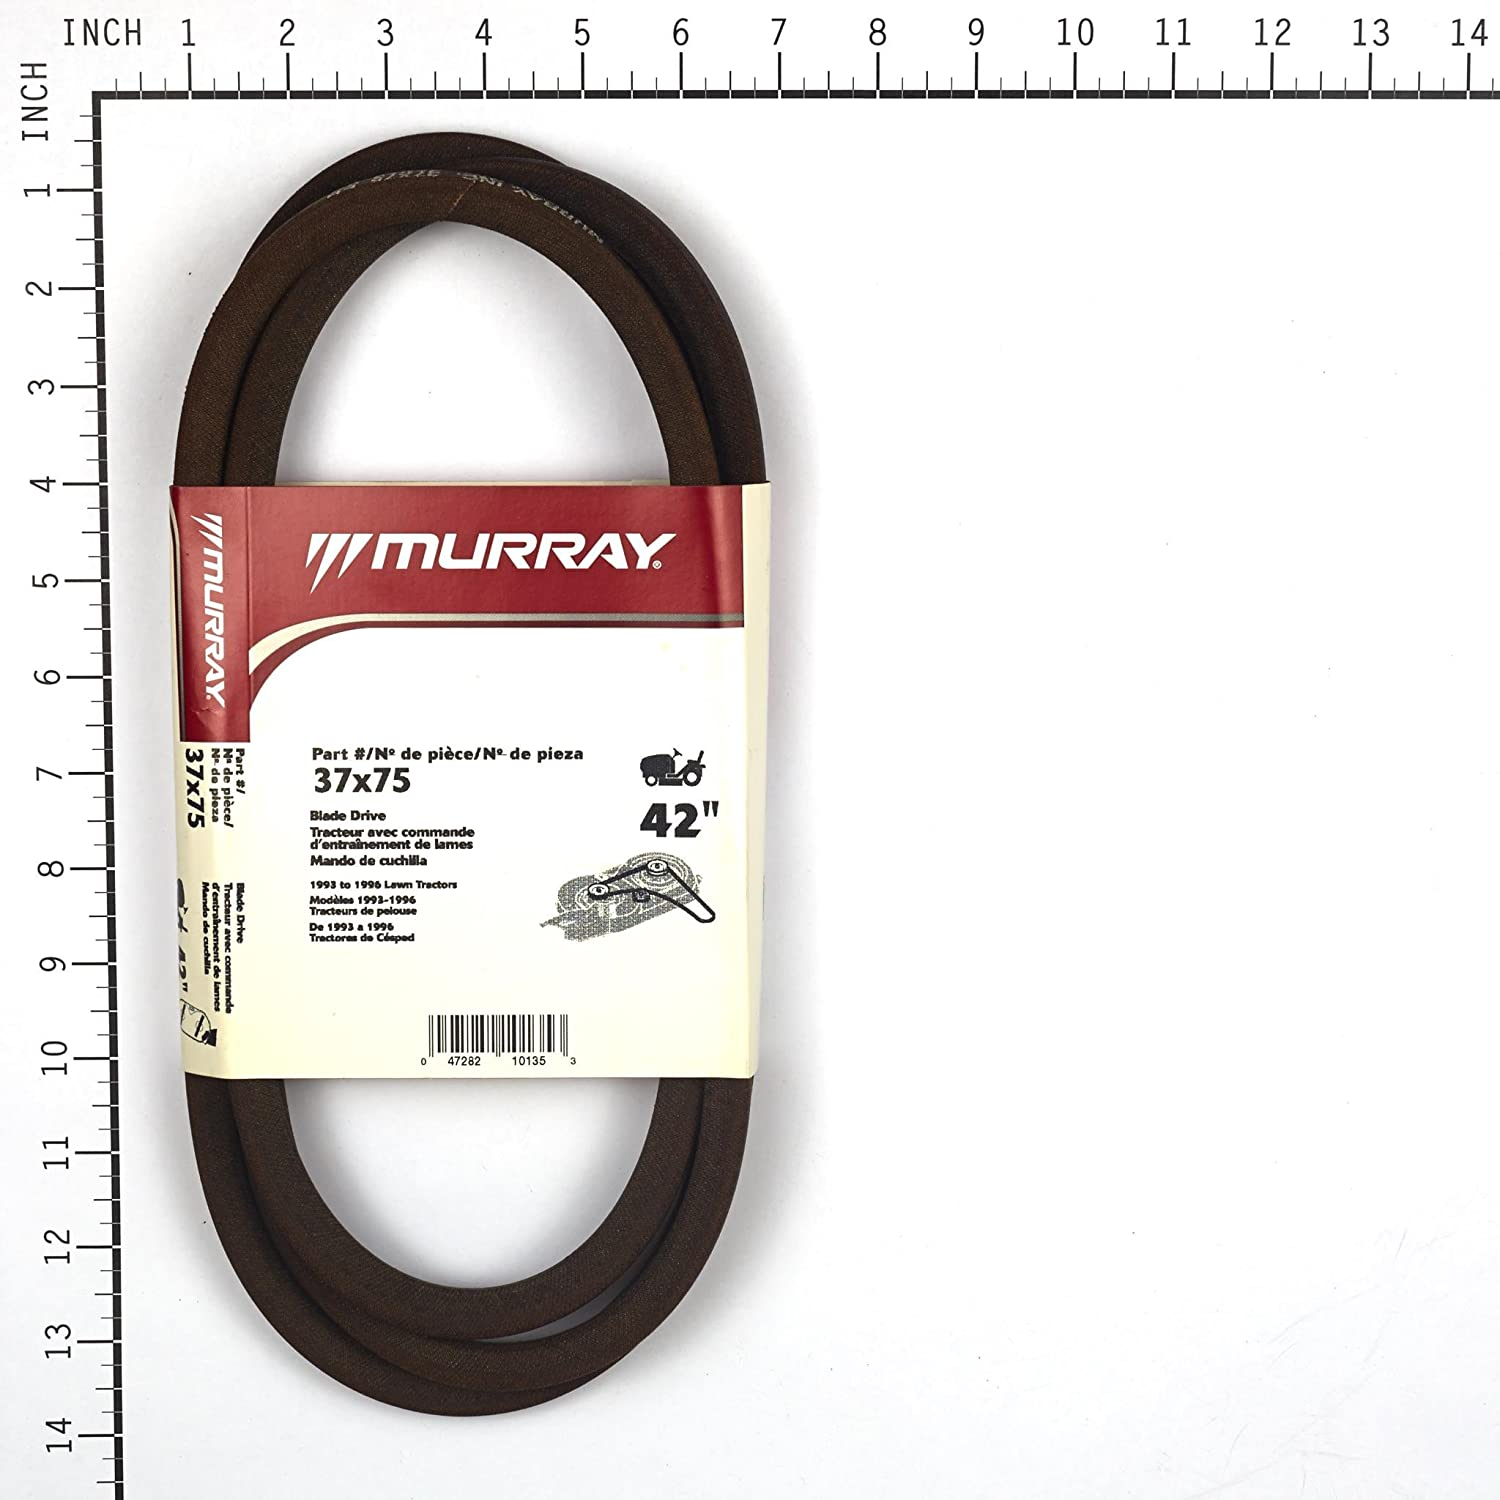 Murray 42 Lawn Mower Blade Belt 90 96 37x75ma Motion Drive Diagram And Parts List For Ridingmowertractor Garden Outdoor